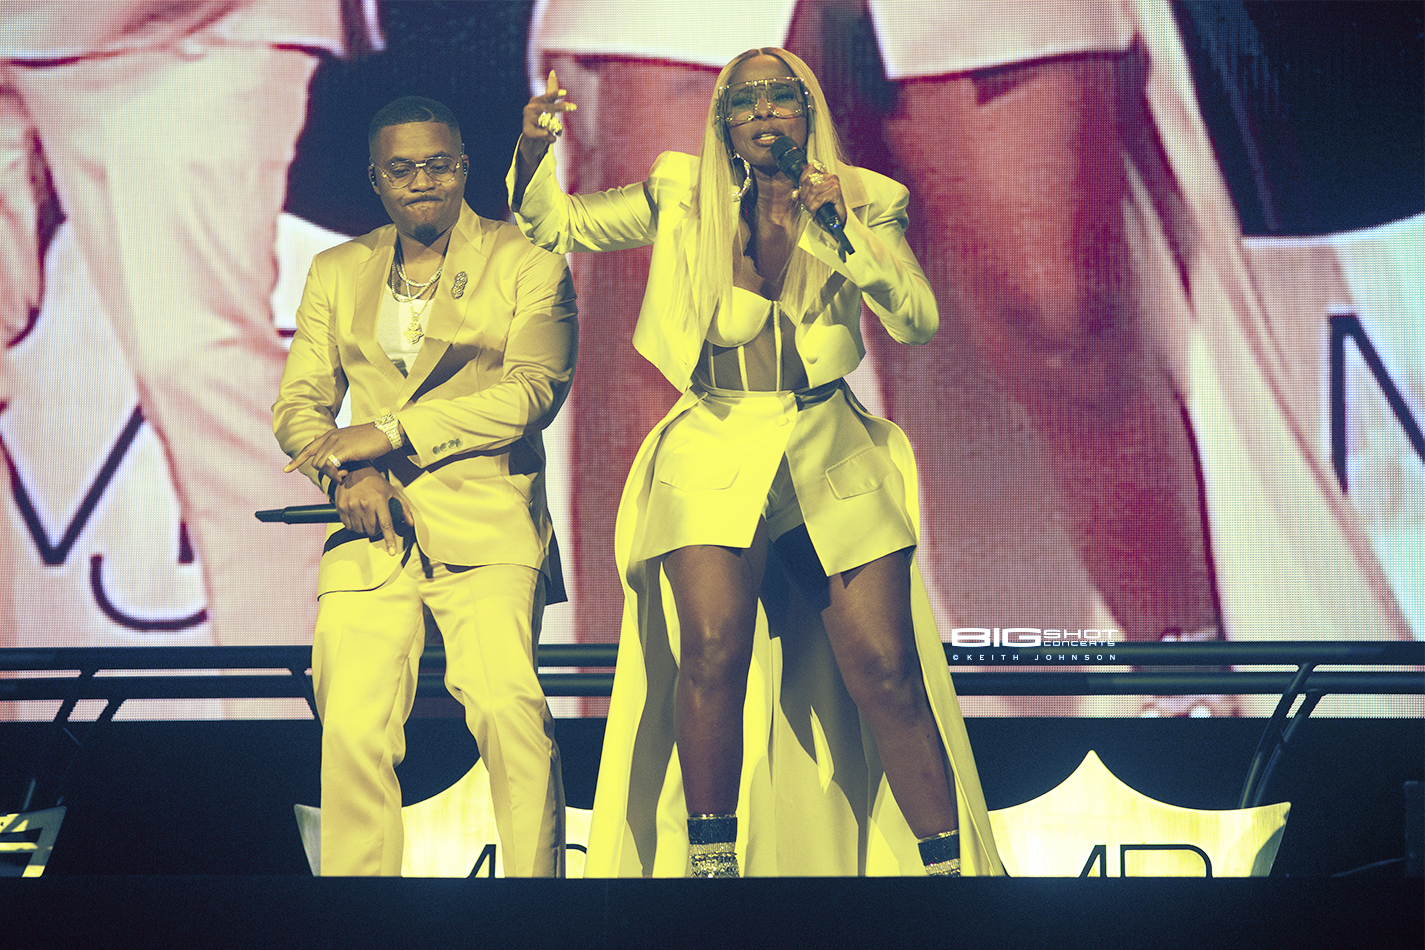 Mary J. Blige and Nas Royalty Tour